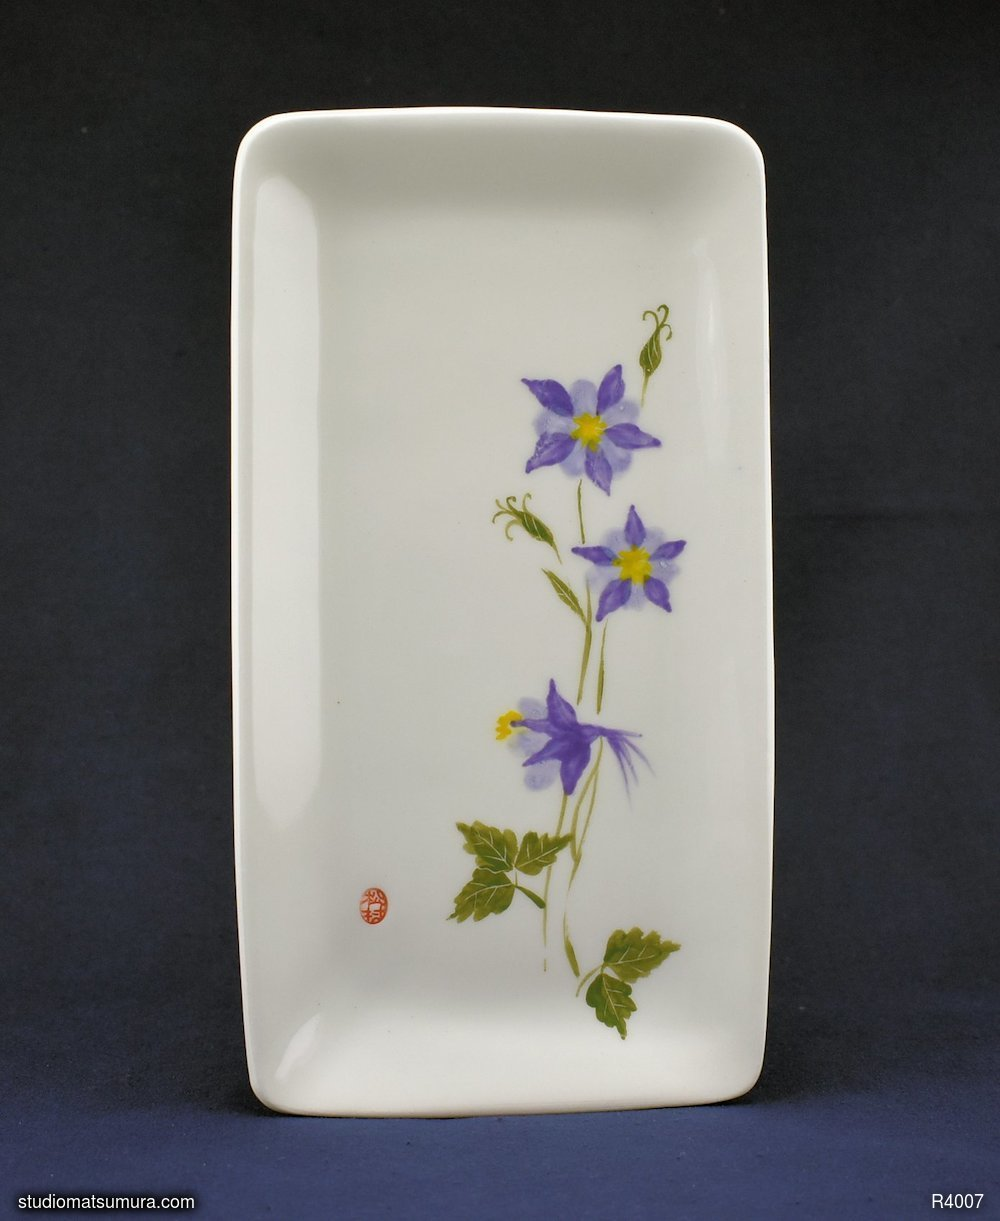 Handmade dinnerware with Sumi-e drawings of a Violet Columbine